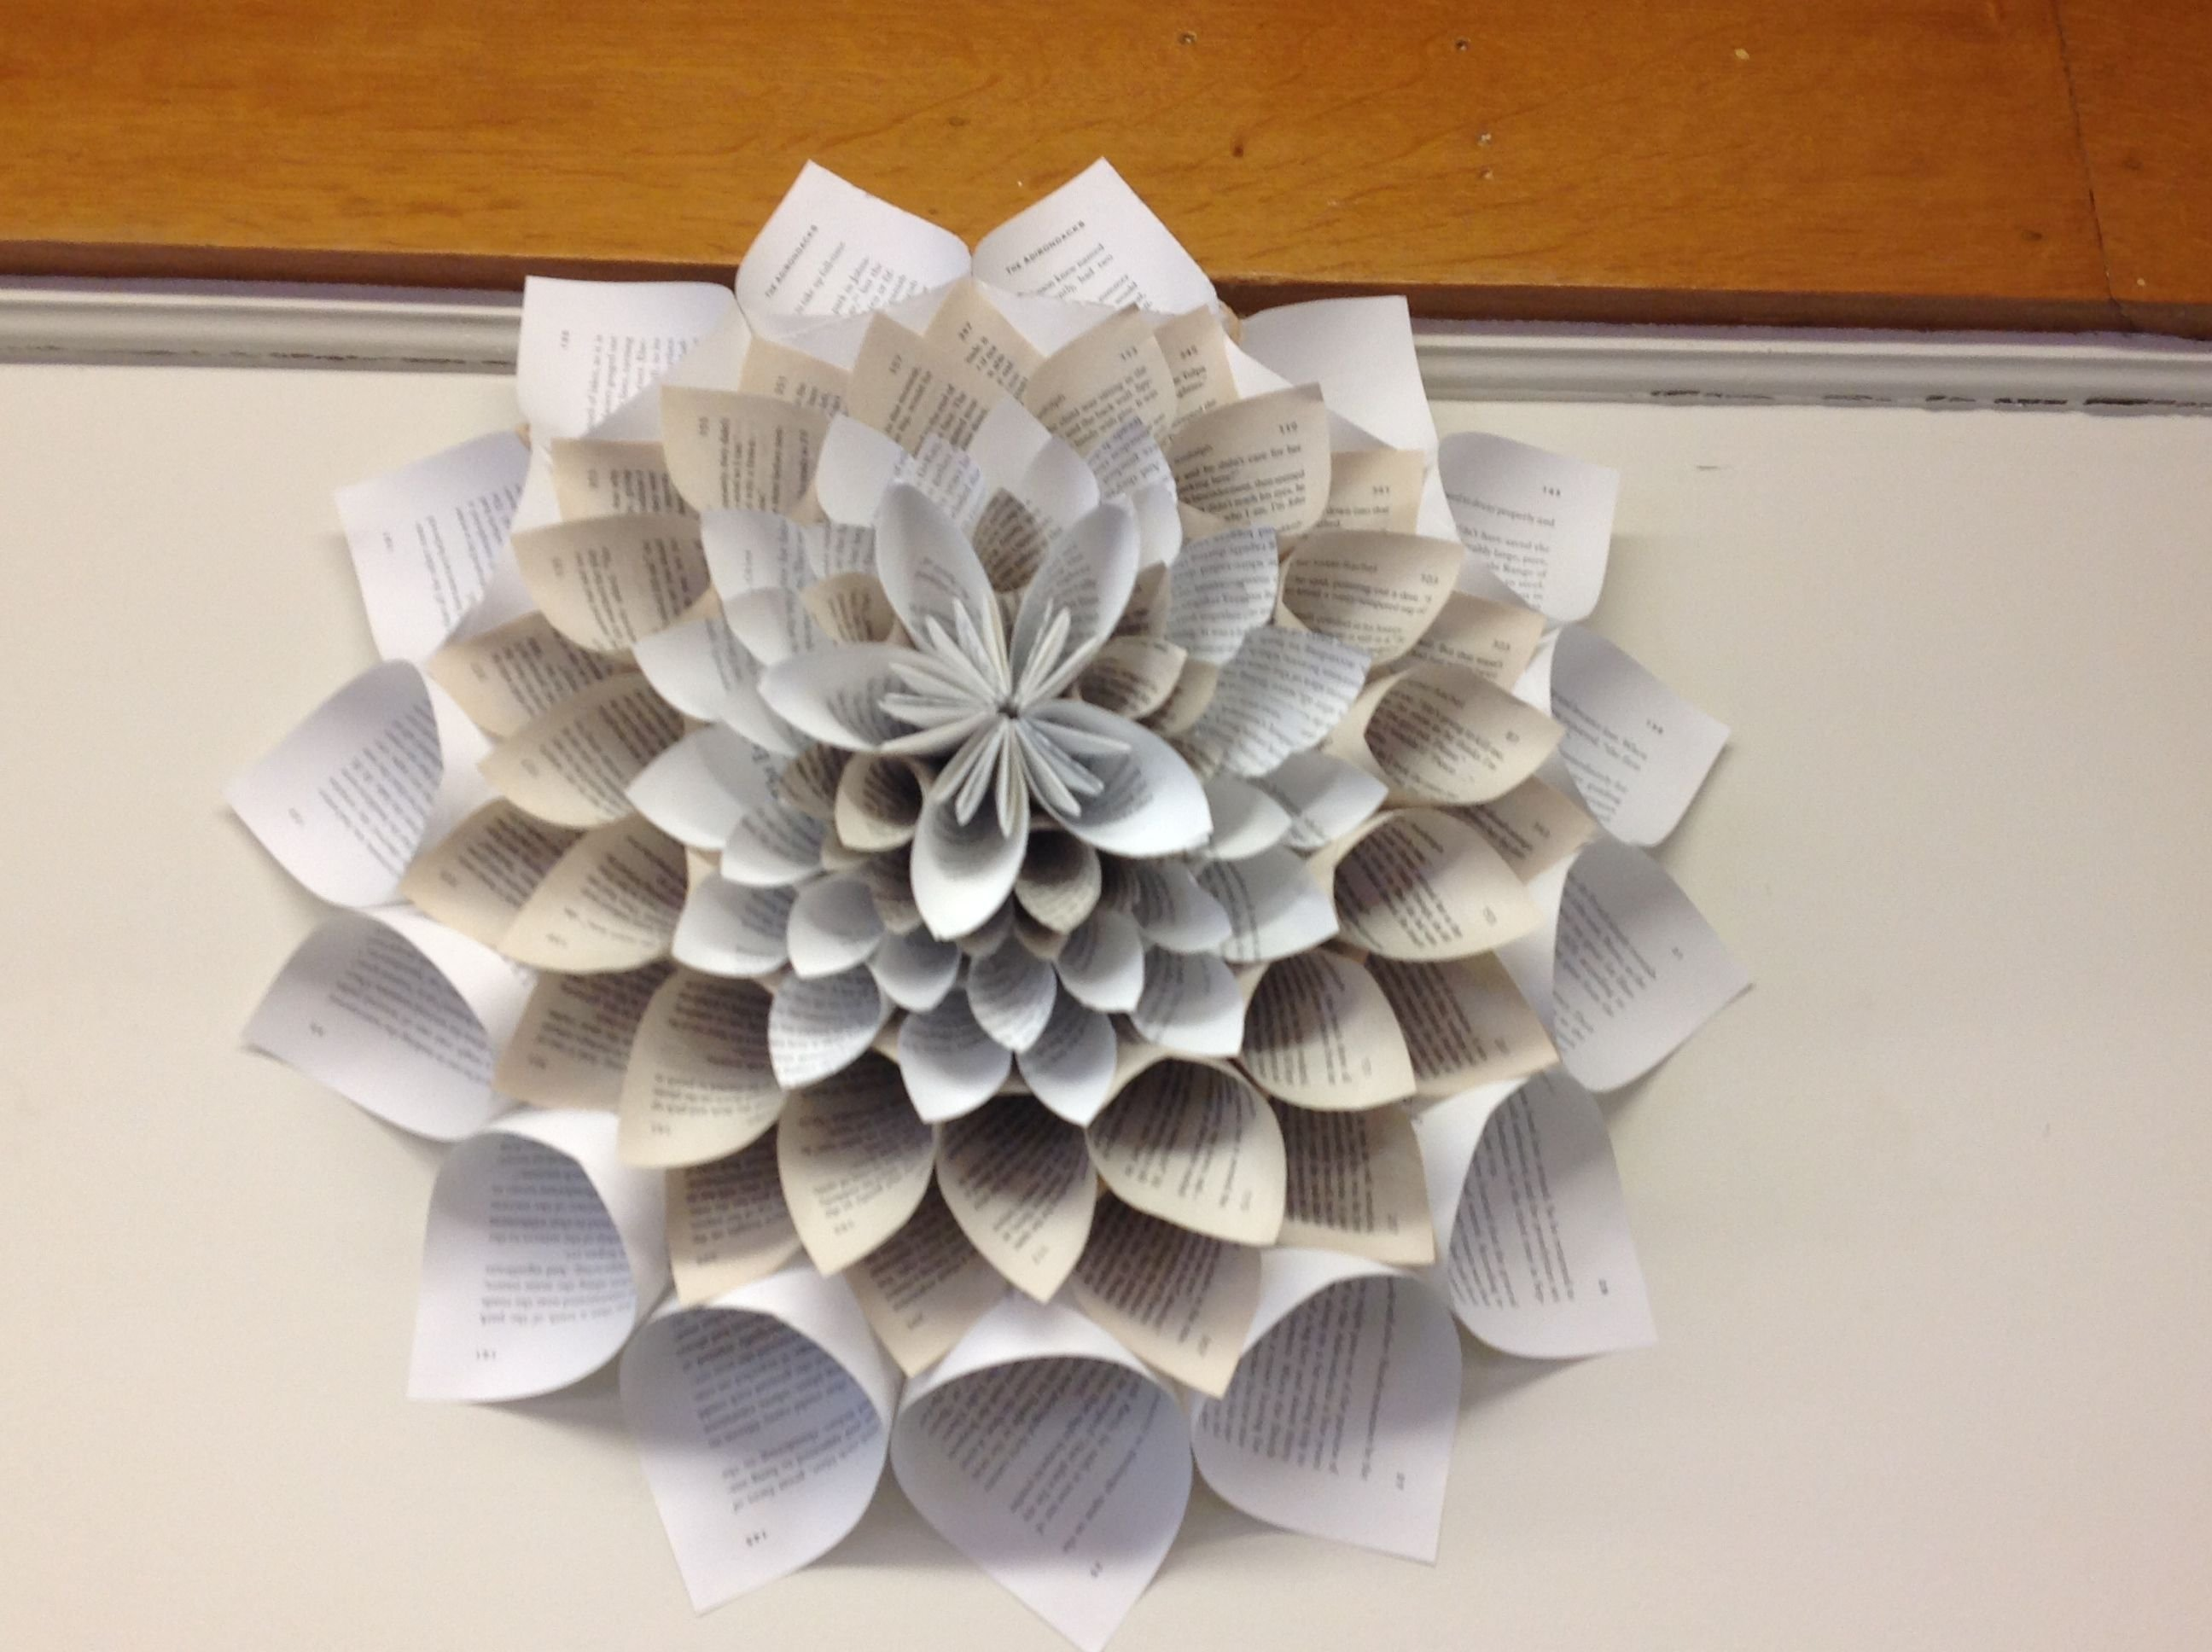 book craft at greenfield public library   library as incubator